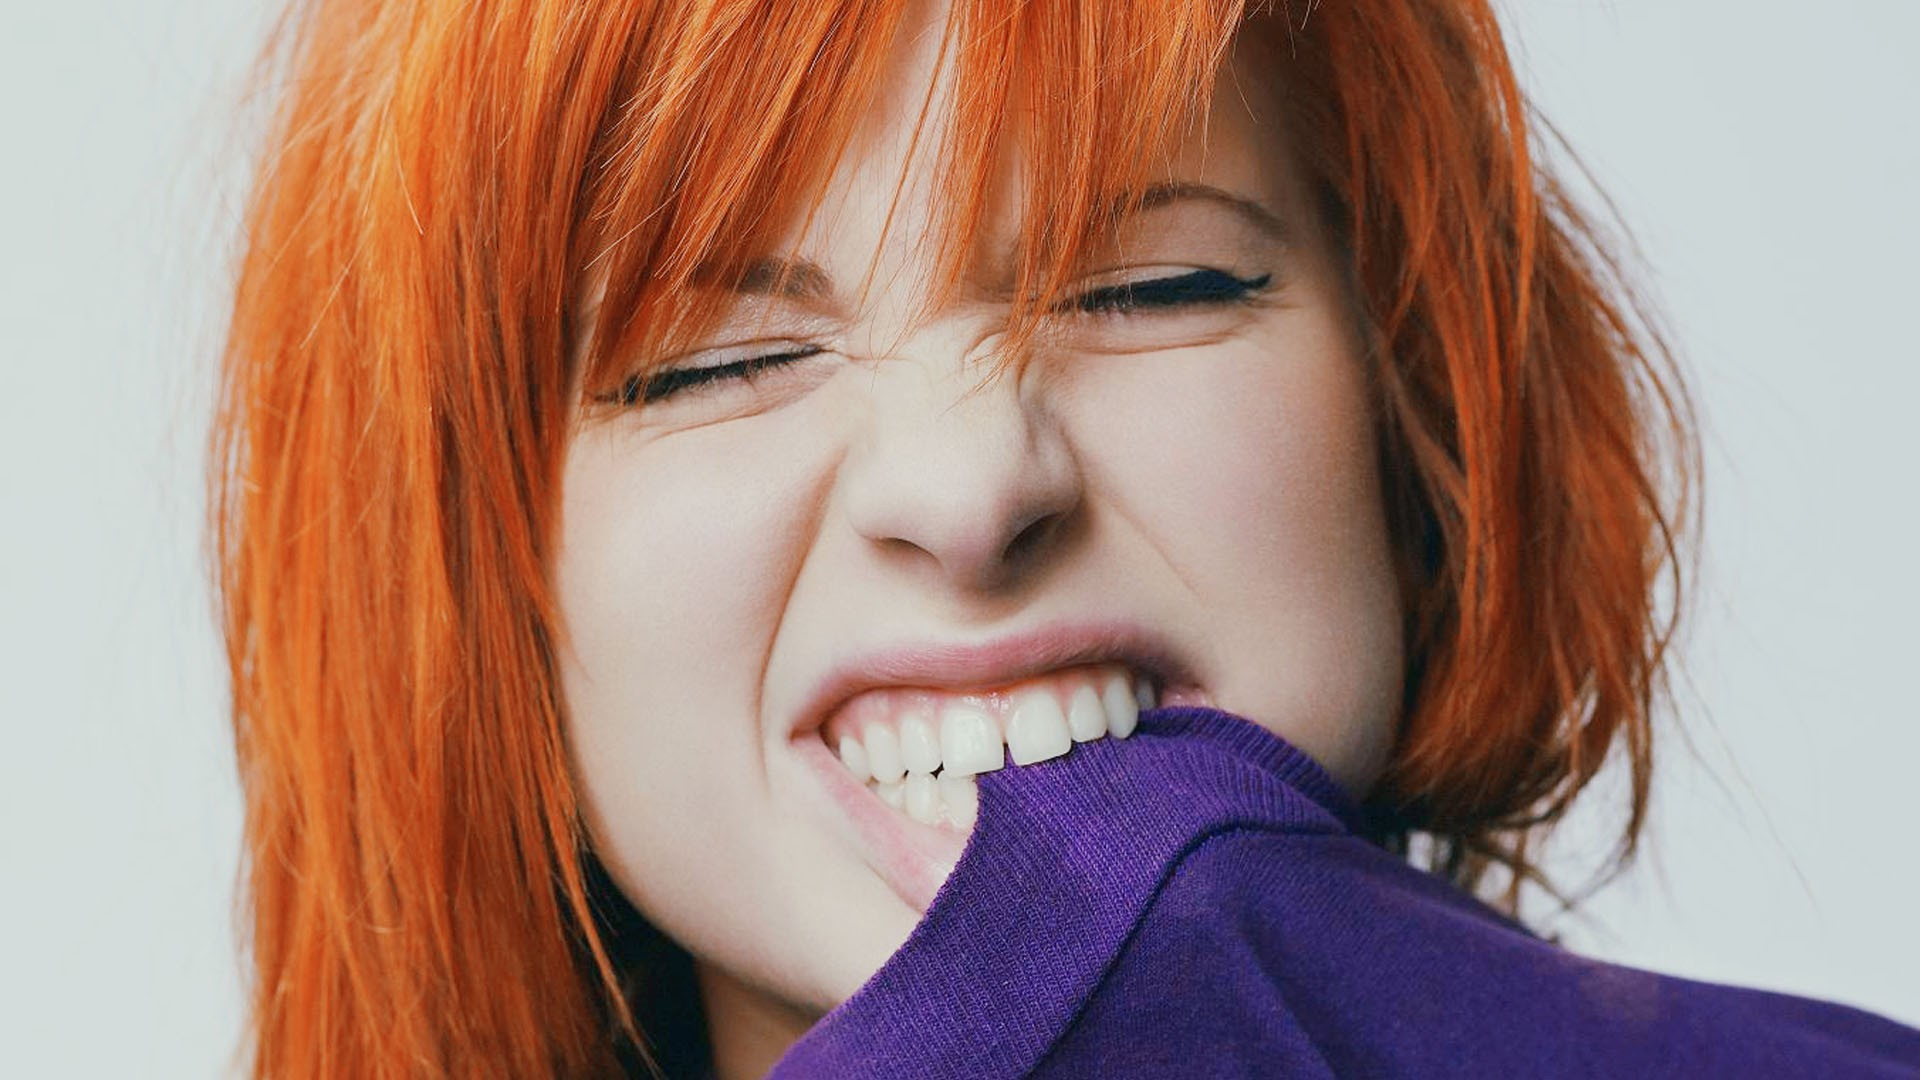 Hayley Williams Hayley Paramore 429763 1920x1080